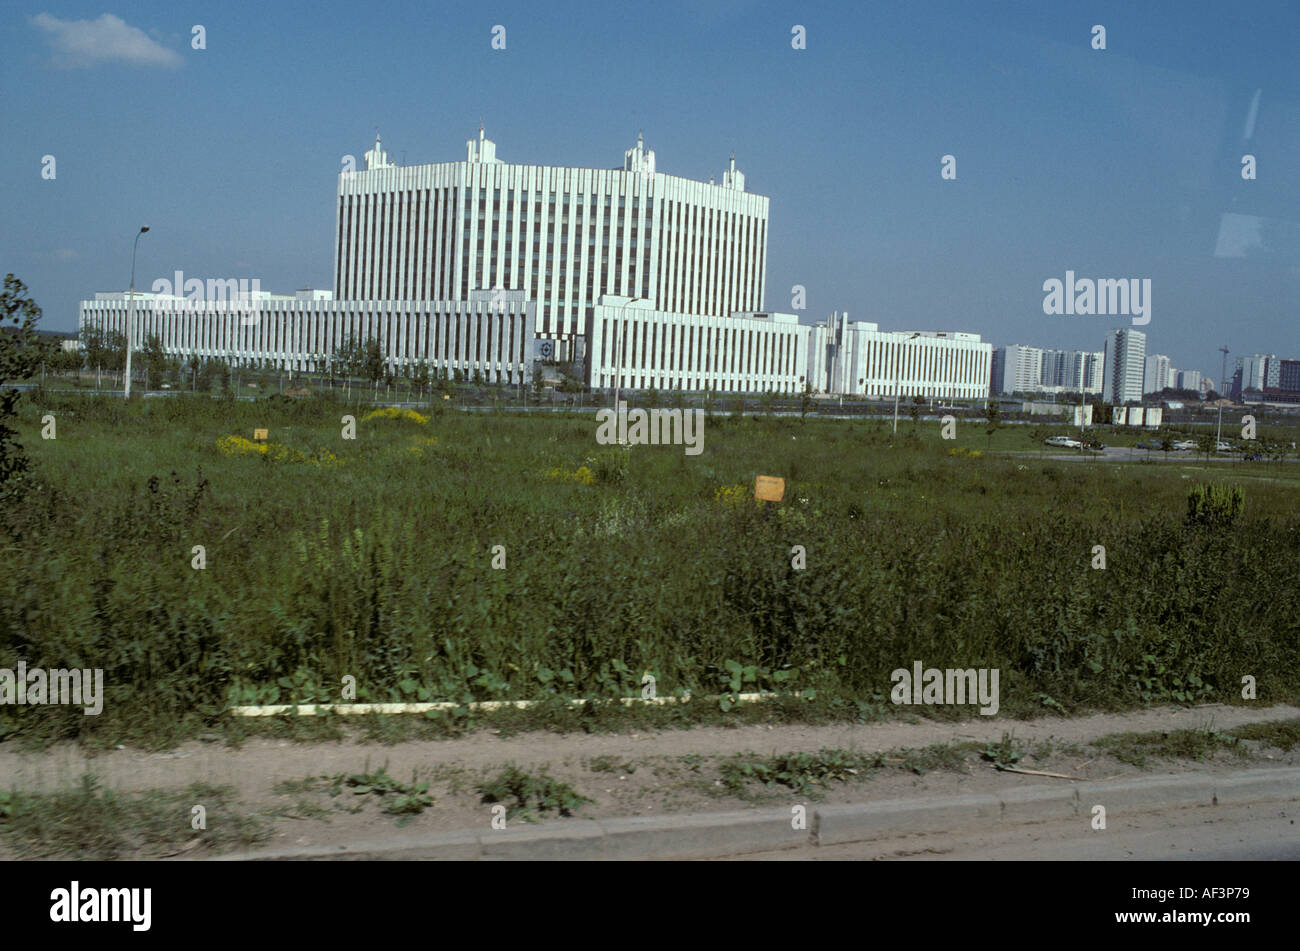 Friendship force travel exchange USSR Soviet Union Russia Moldova Moldavia Eastern Europe Communist Communism Socialism - Stock Image